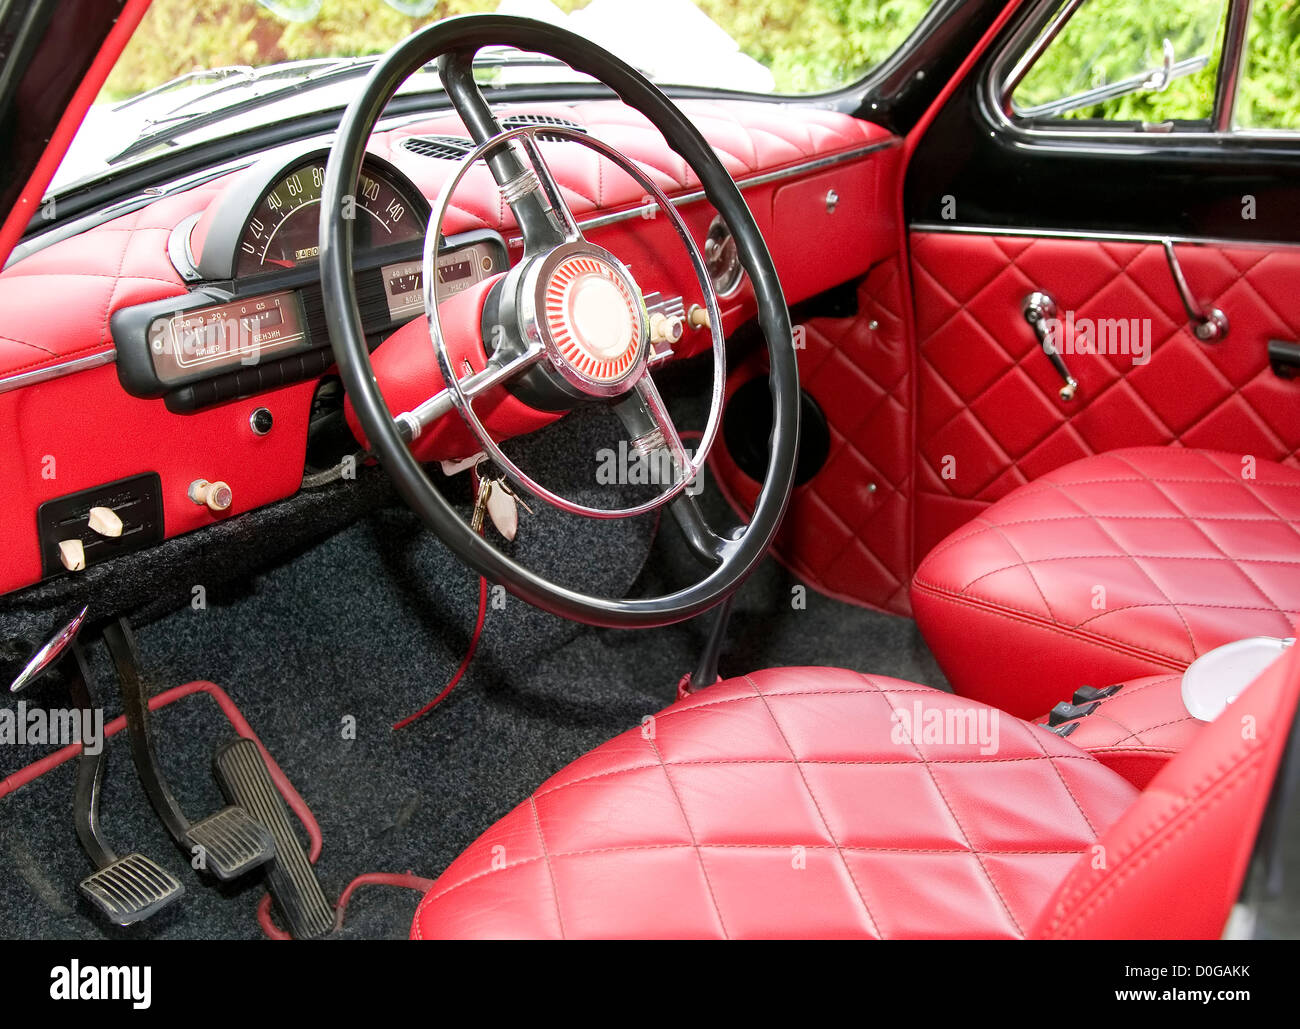 antique car with red interior inside and old black wheel stock photo royalty free image. Black Bedroom Furniture Sets. Home Design Ideas